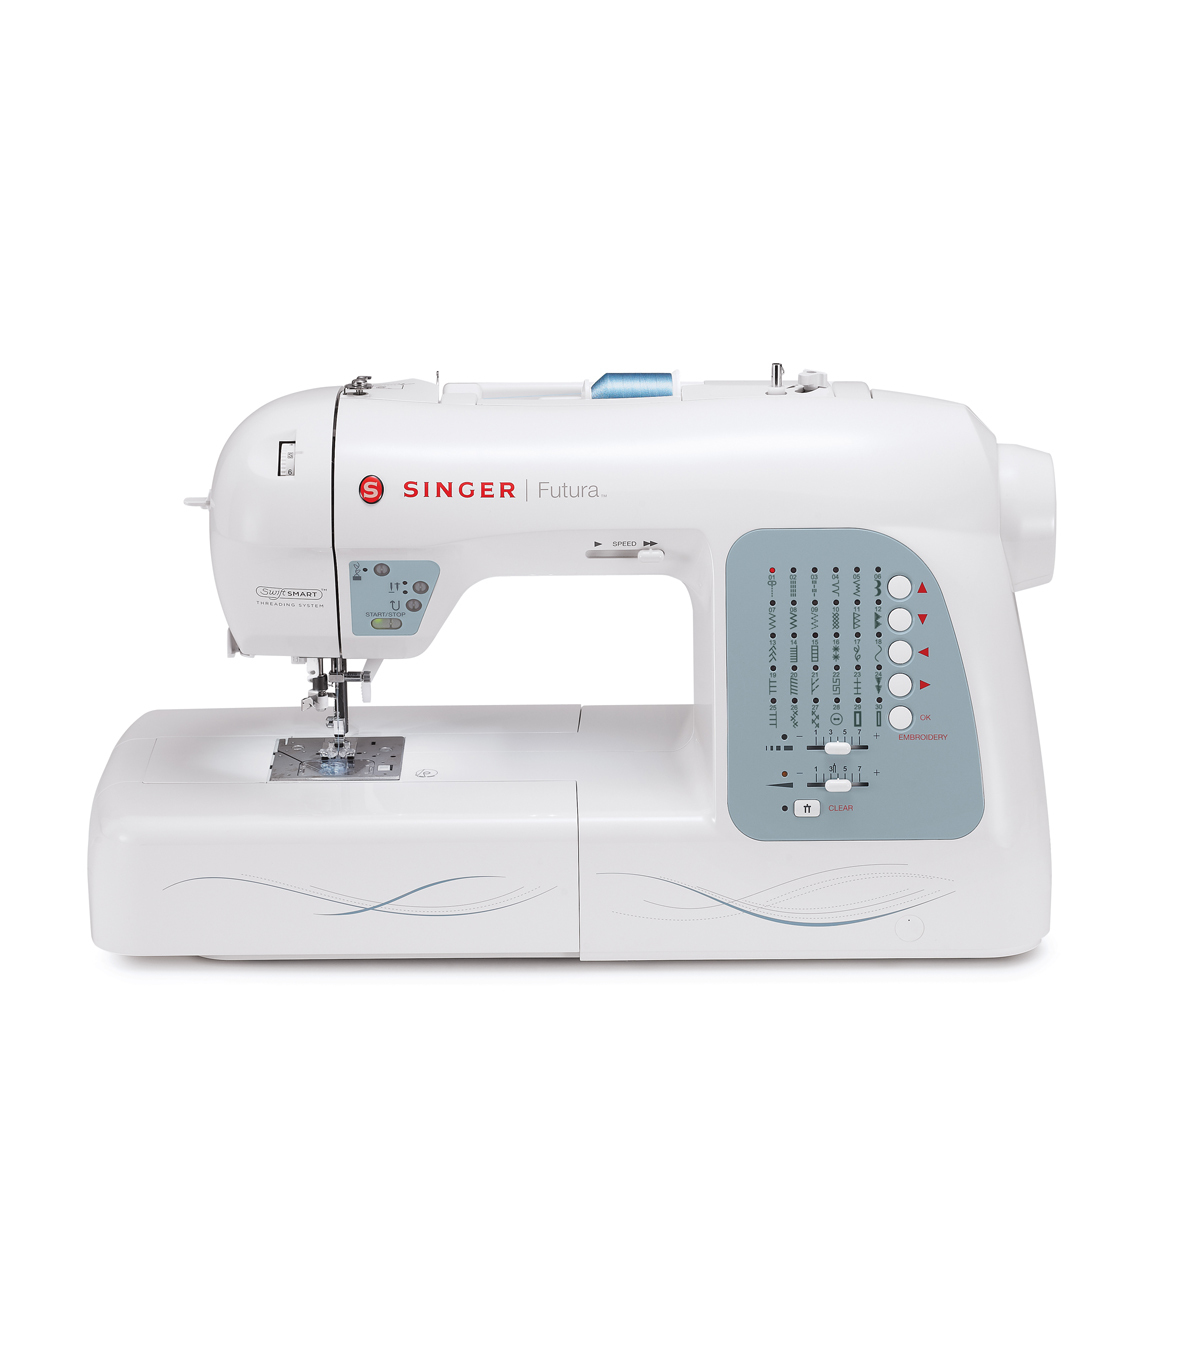 Singer® XL-400 Futura Sewing And Embroidery Machine